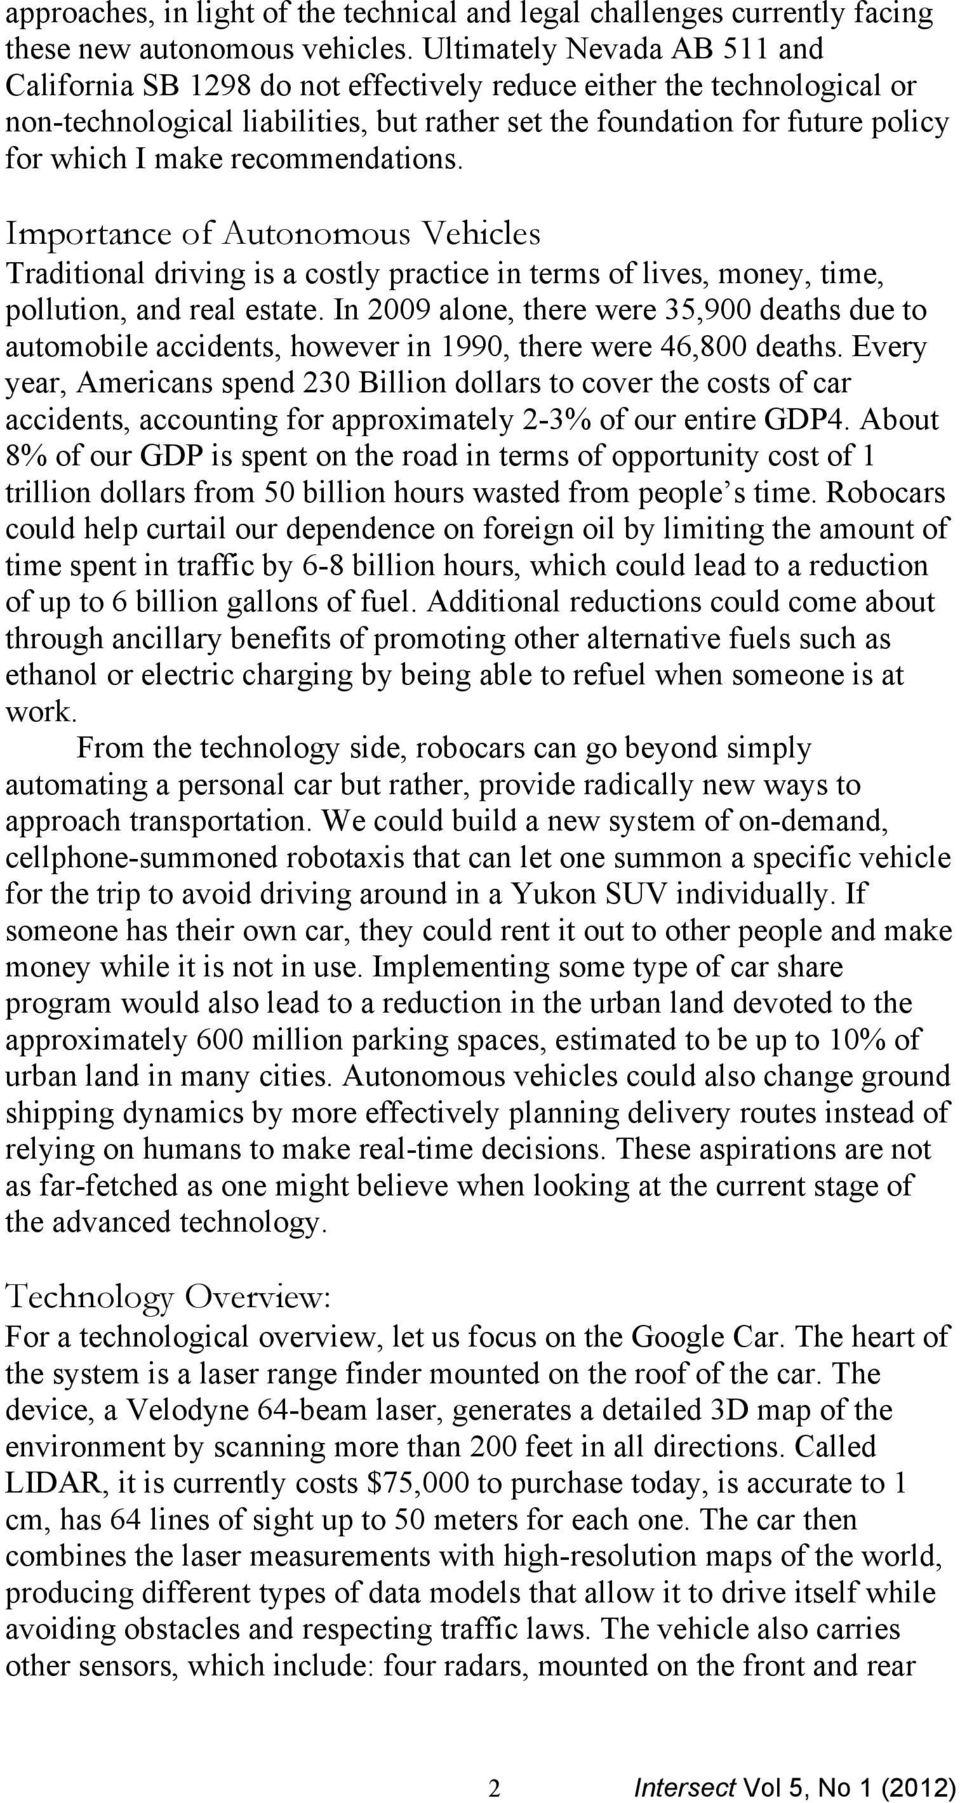 recommendations. Importance of Autonomous Vehicles Traditional driving is a costly practice in terms of lives, money, time, pollution, and real estate.